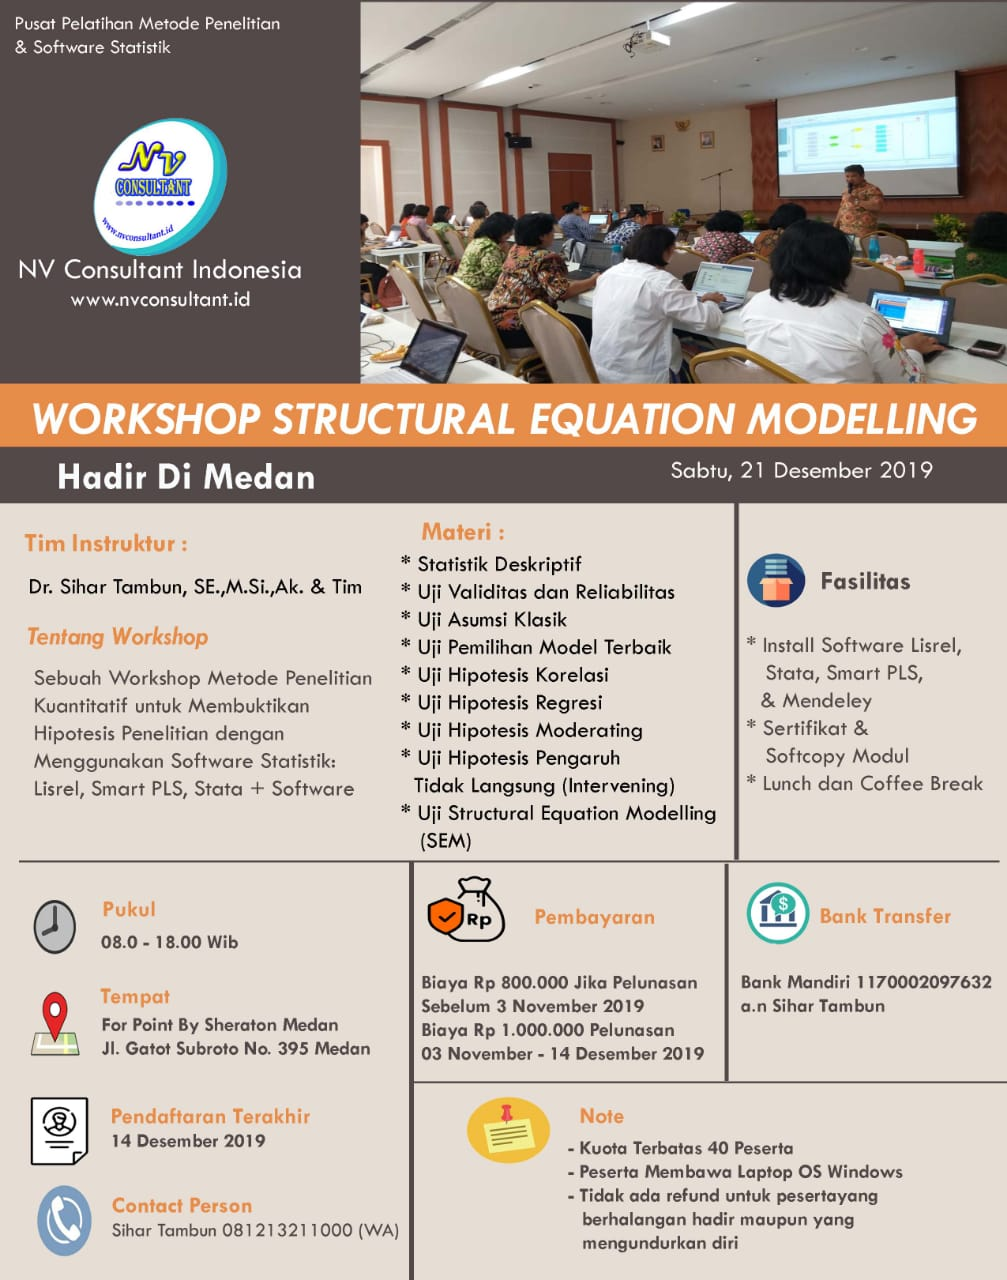 WORKSHOP STRUCTURAL EQUATION MODELLING - MEDAN